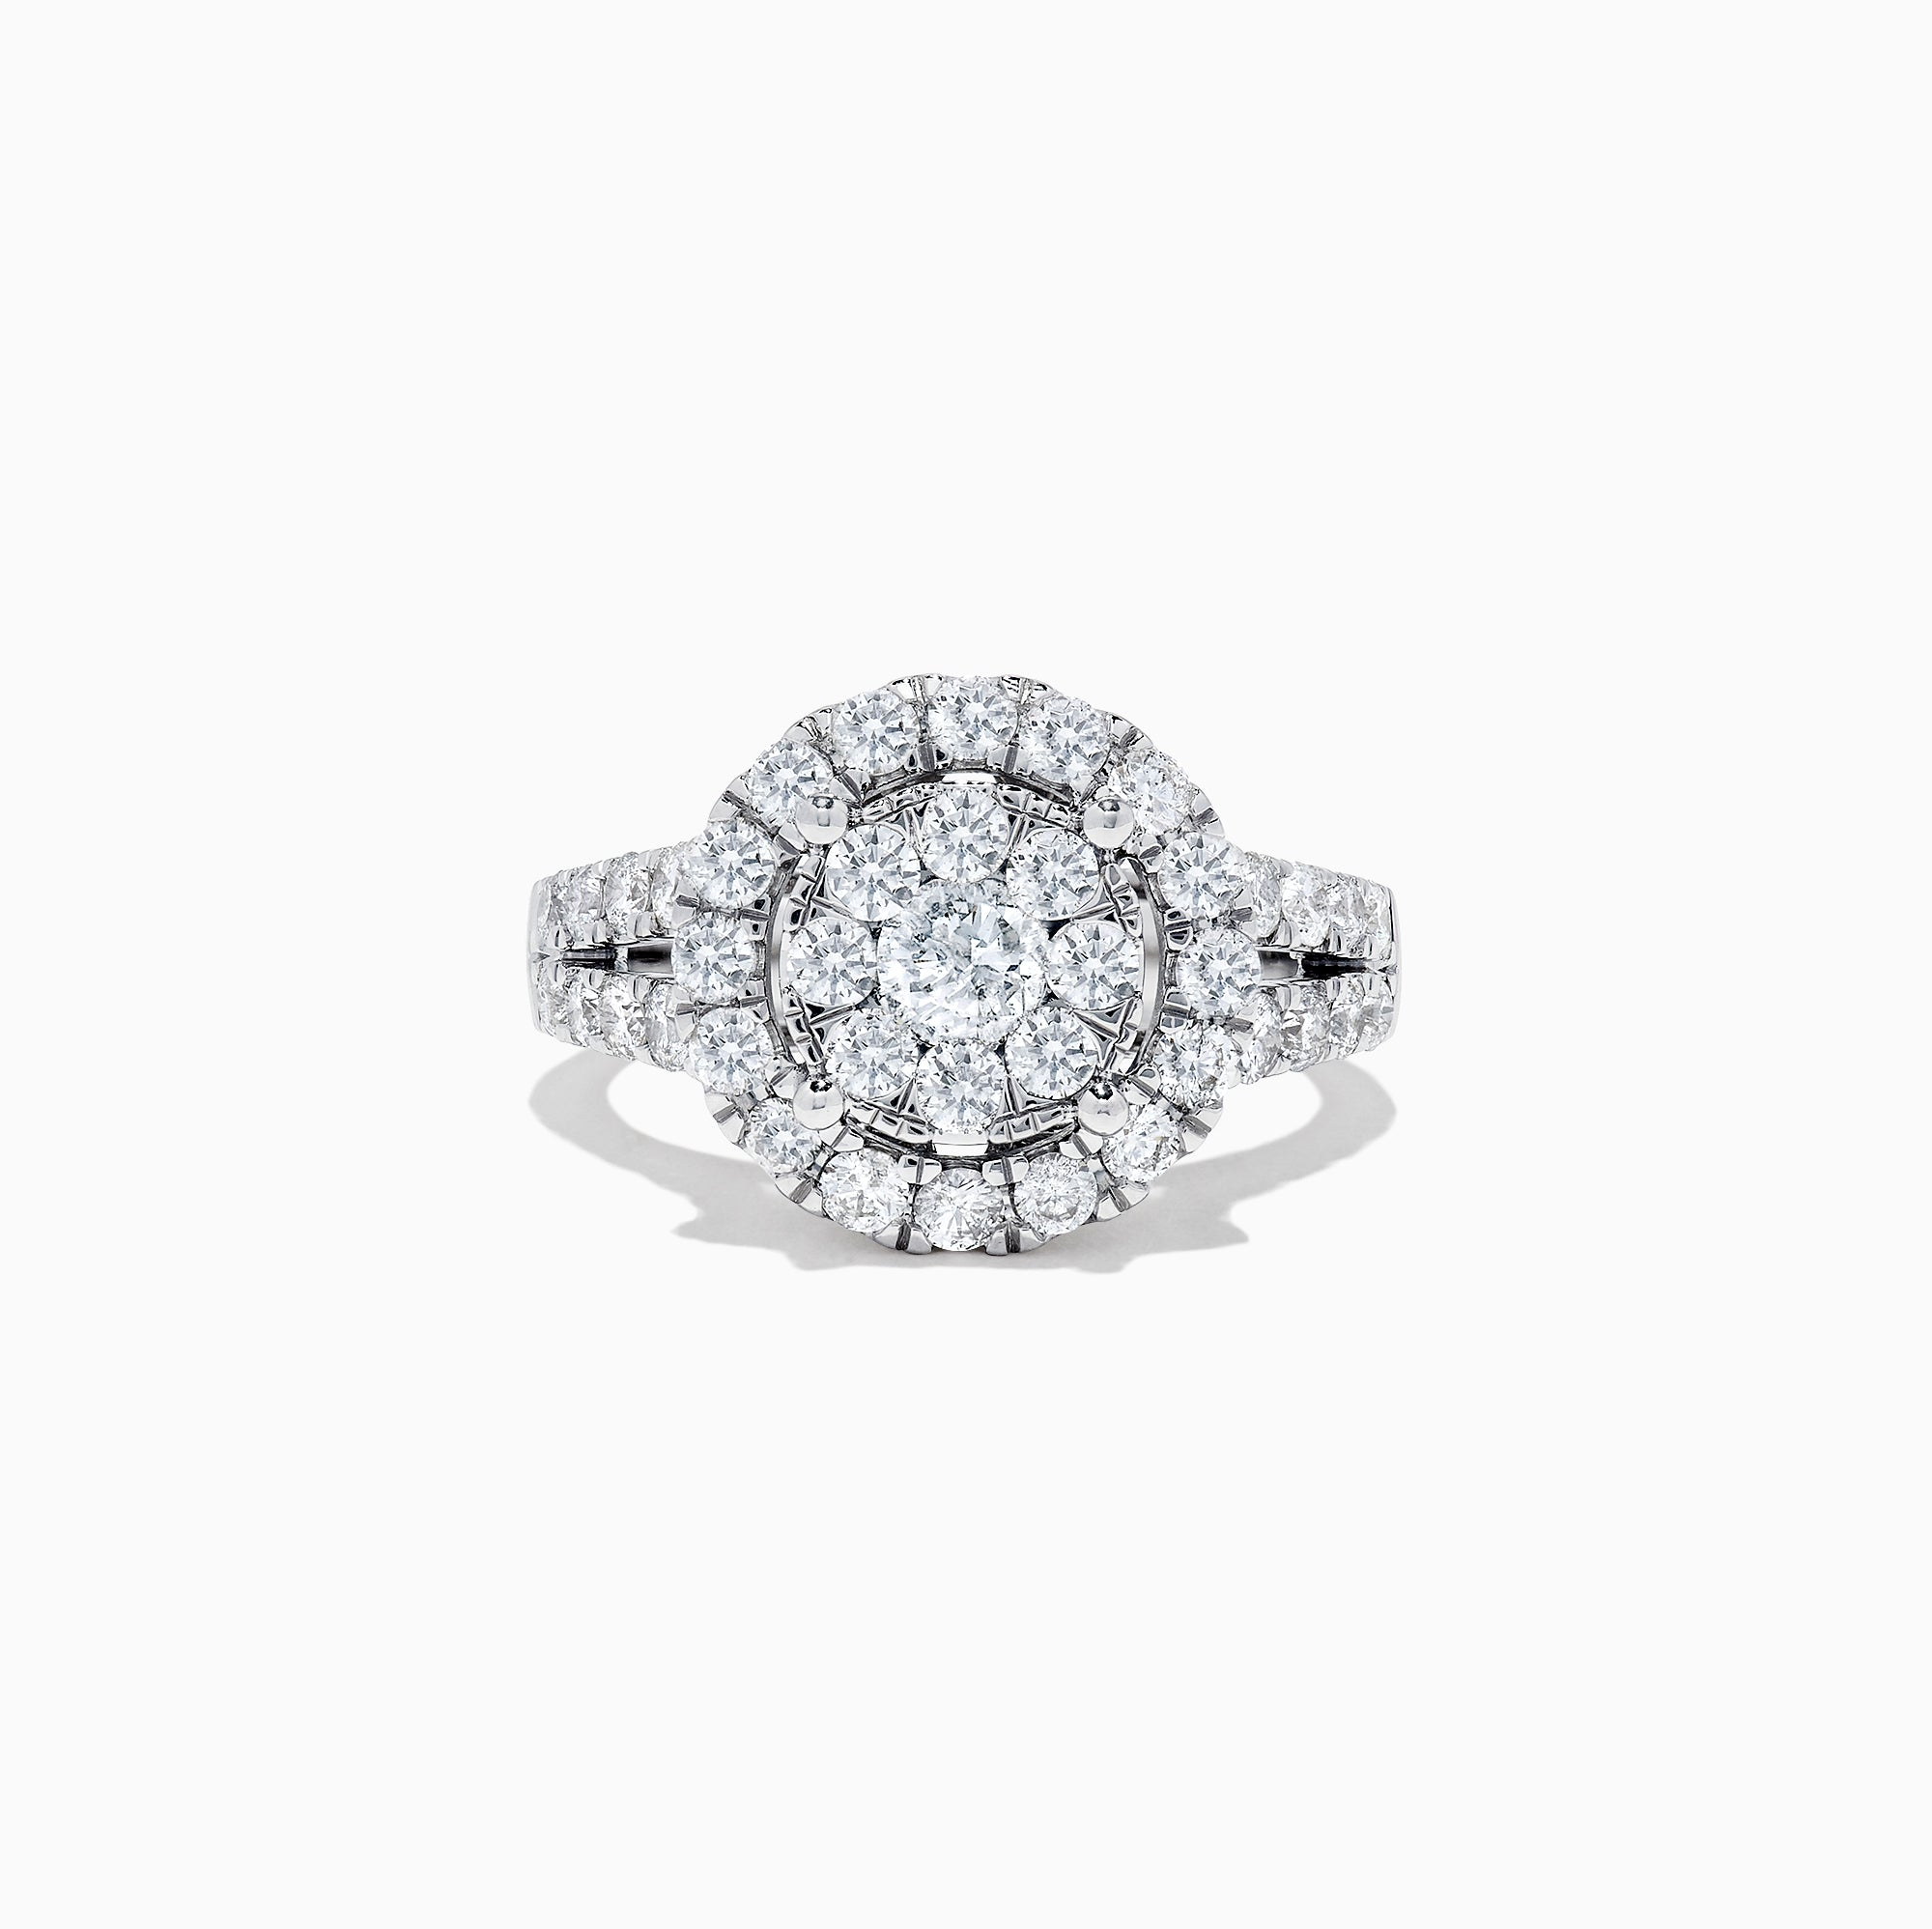 Effy Bouquet 14K White Gold Diamond Cluster Ring, 1.94 TCW